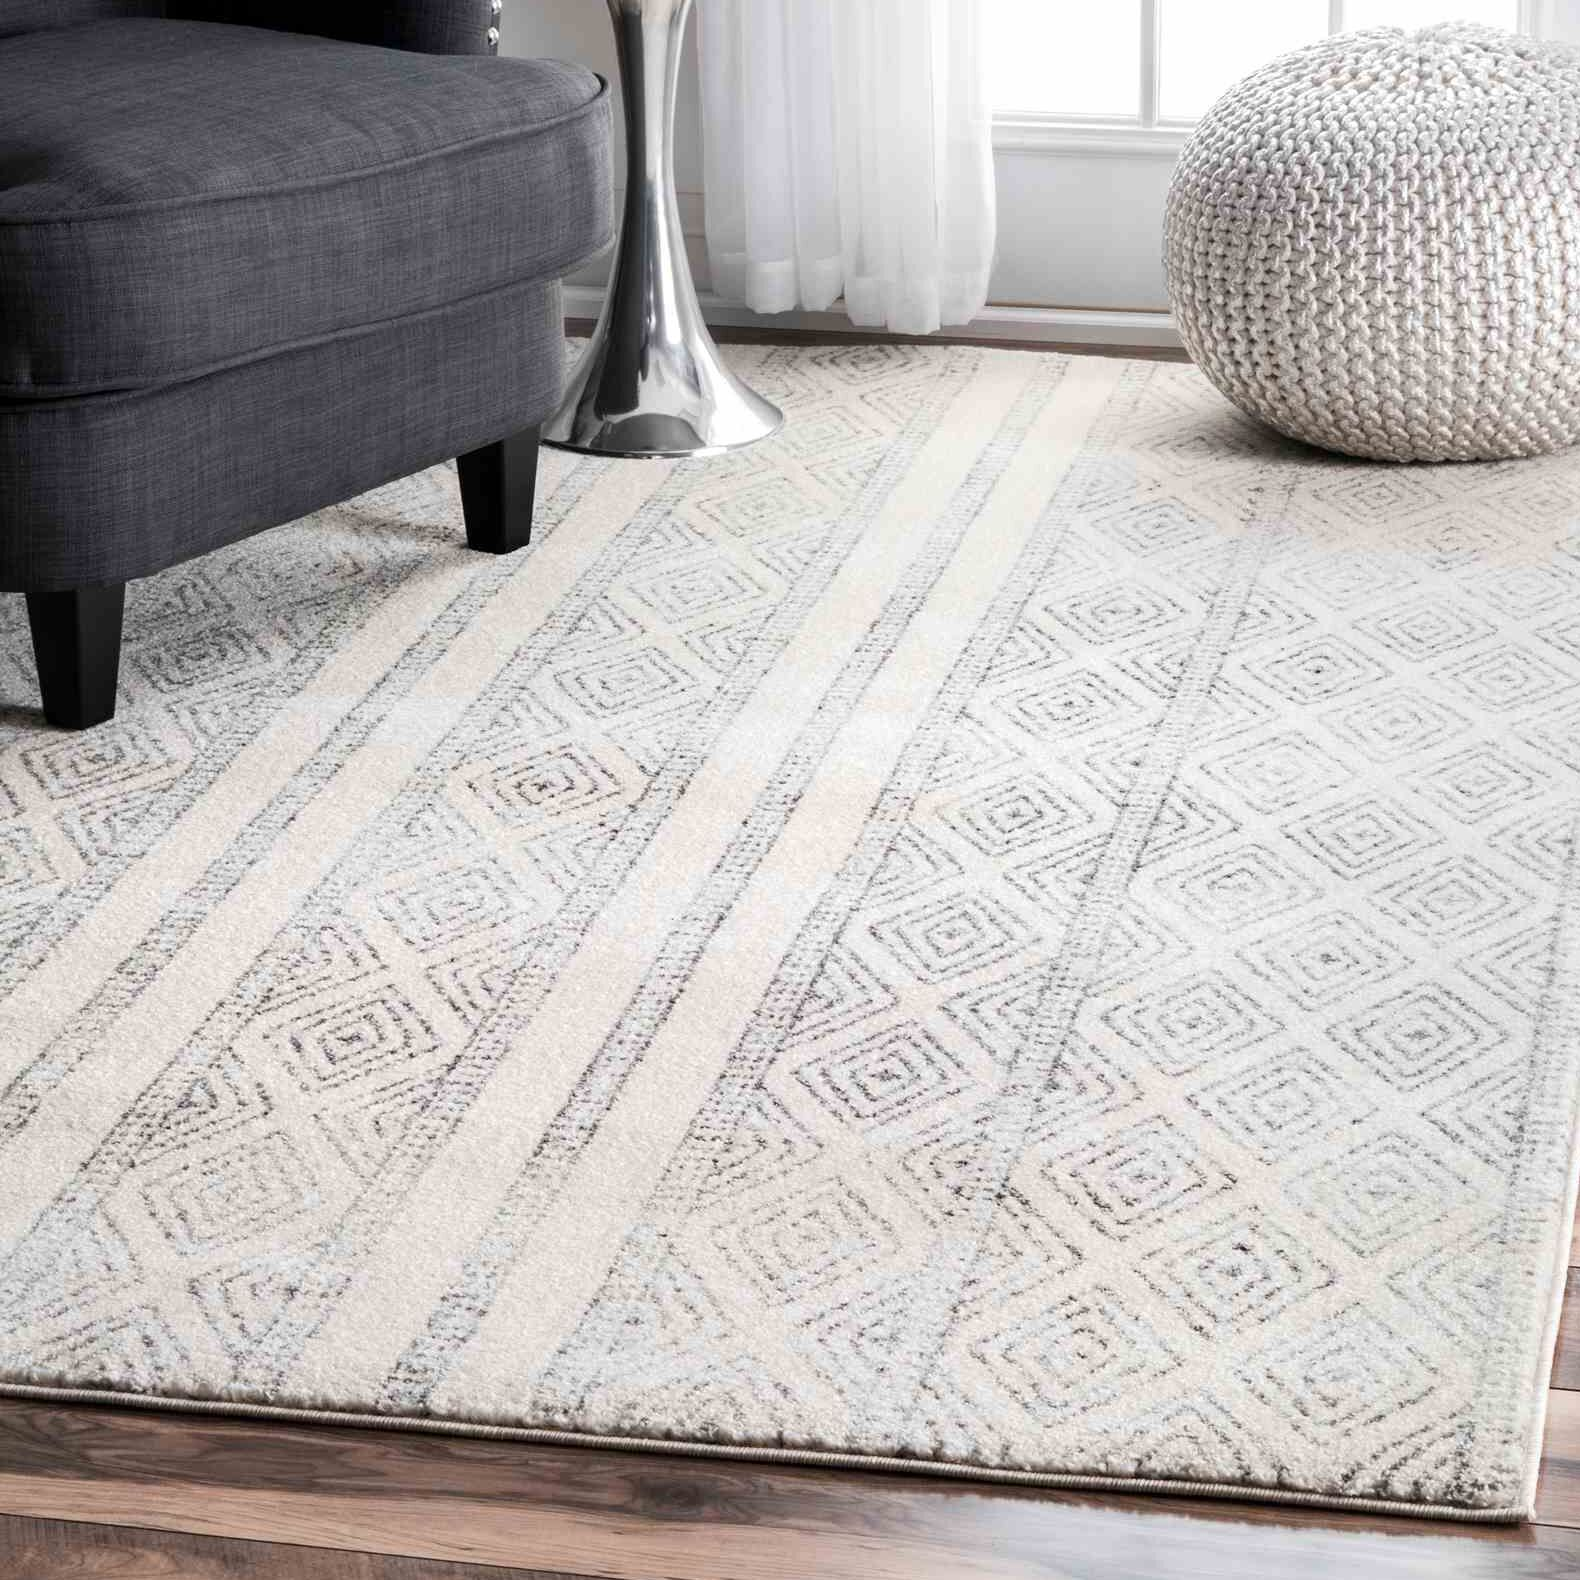 Keagan Gray Area Rug Rug Size: Rectangle 6'7